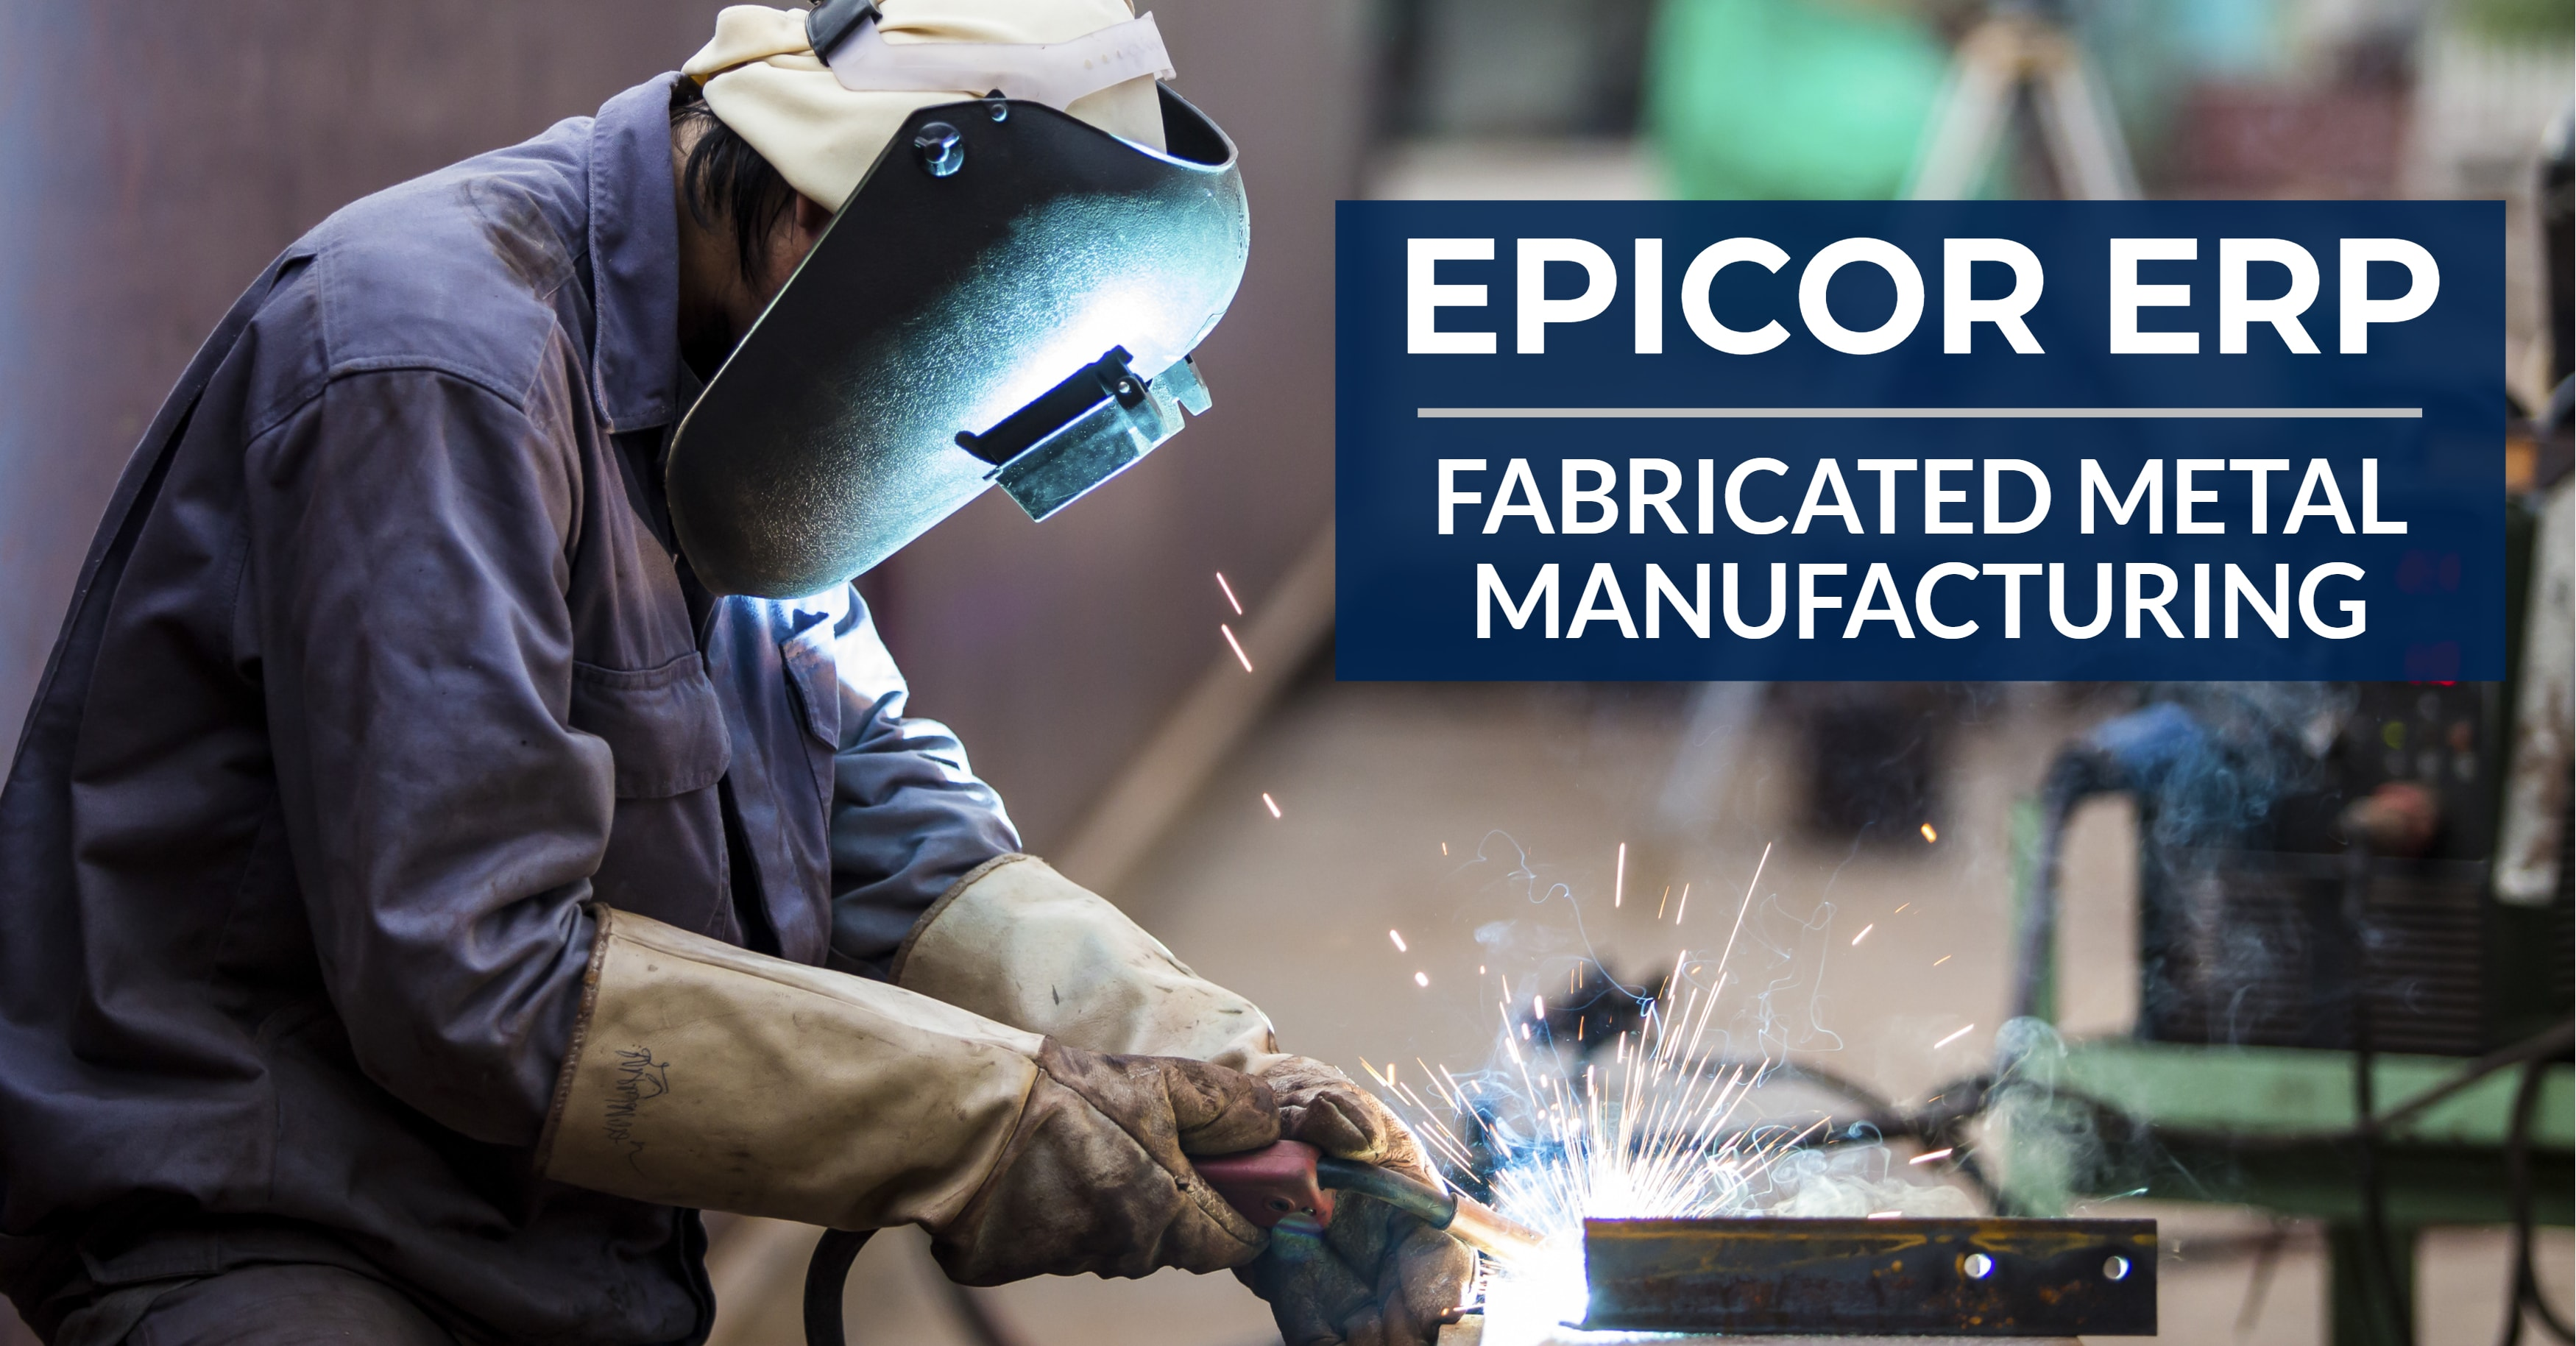 What Can Epicor ERP Do for Metal Fabricators?